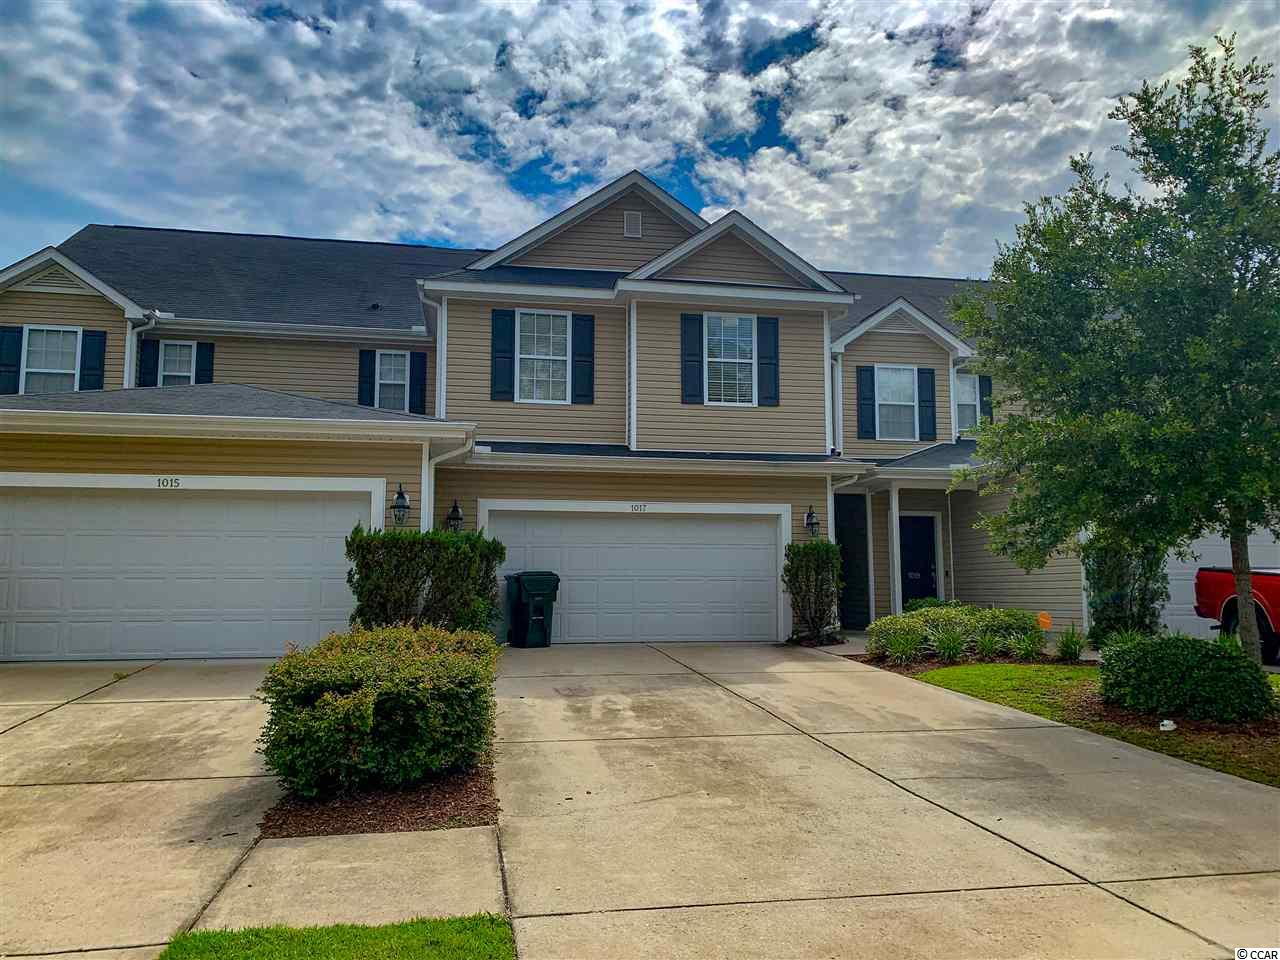 Fantastic investment opportunity in this spacious 3BR/2.5BA townhouse located close to university, Conway Medical Center, golf, shopping, restaurants & so much.  This unit features spacious bedrooms and separate laundry area.  Heating/cooling system replaced in 2018. New carpet has just been installed! Square footage is approximate and not guaranteed.  Buyer is responsible for verification.